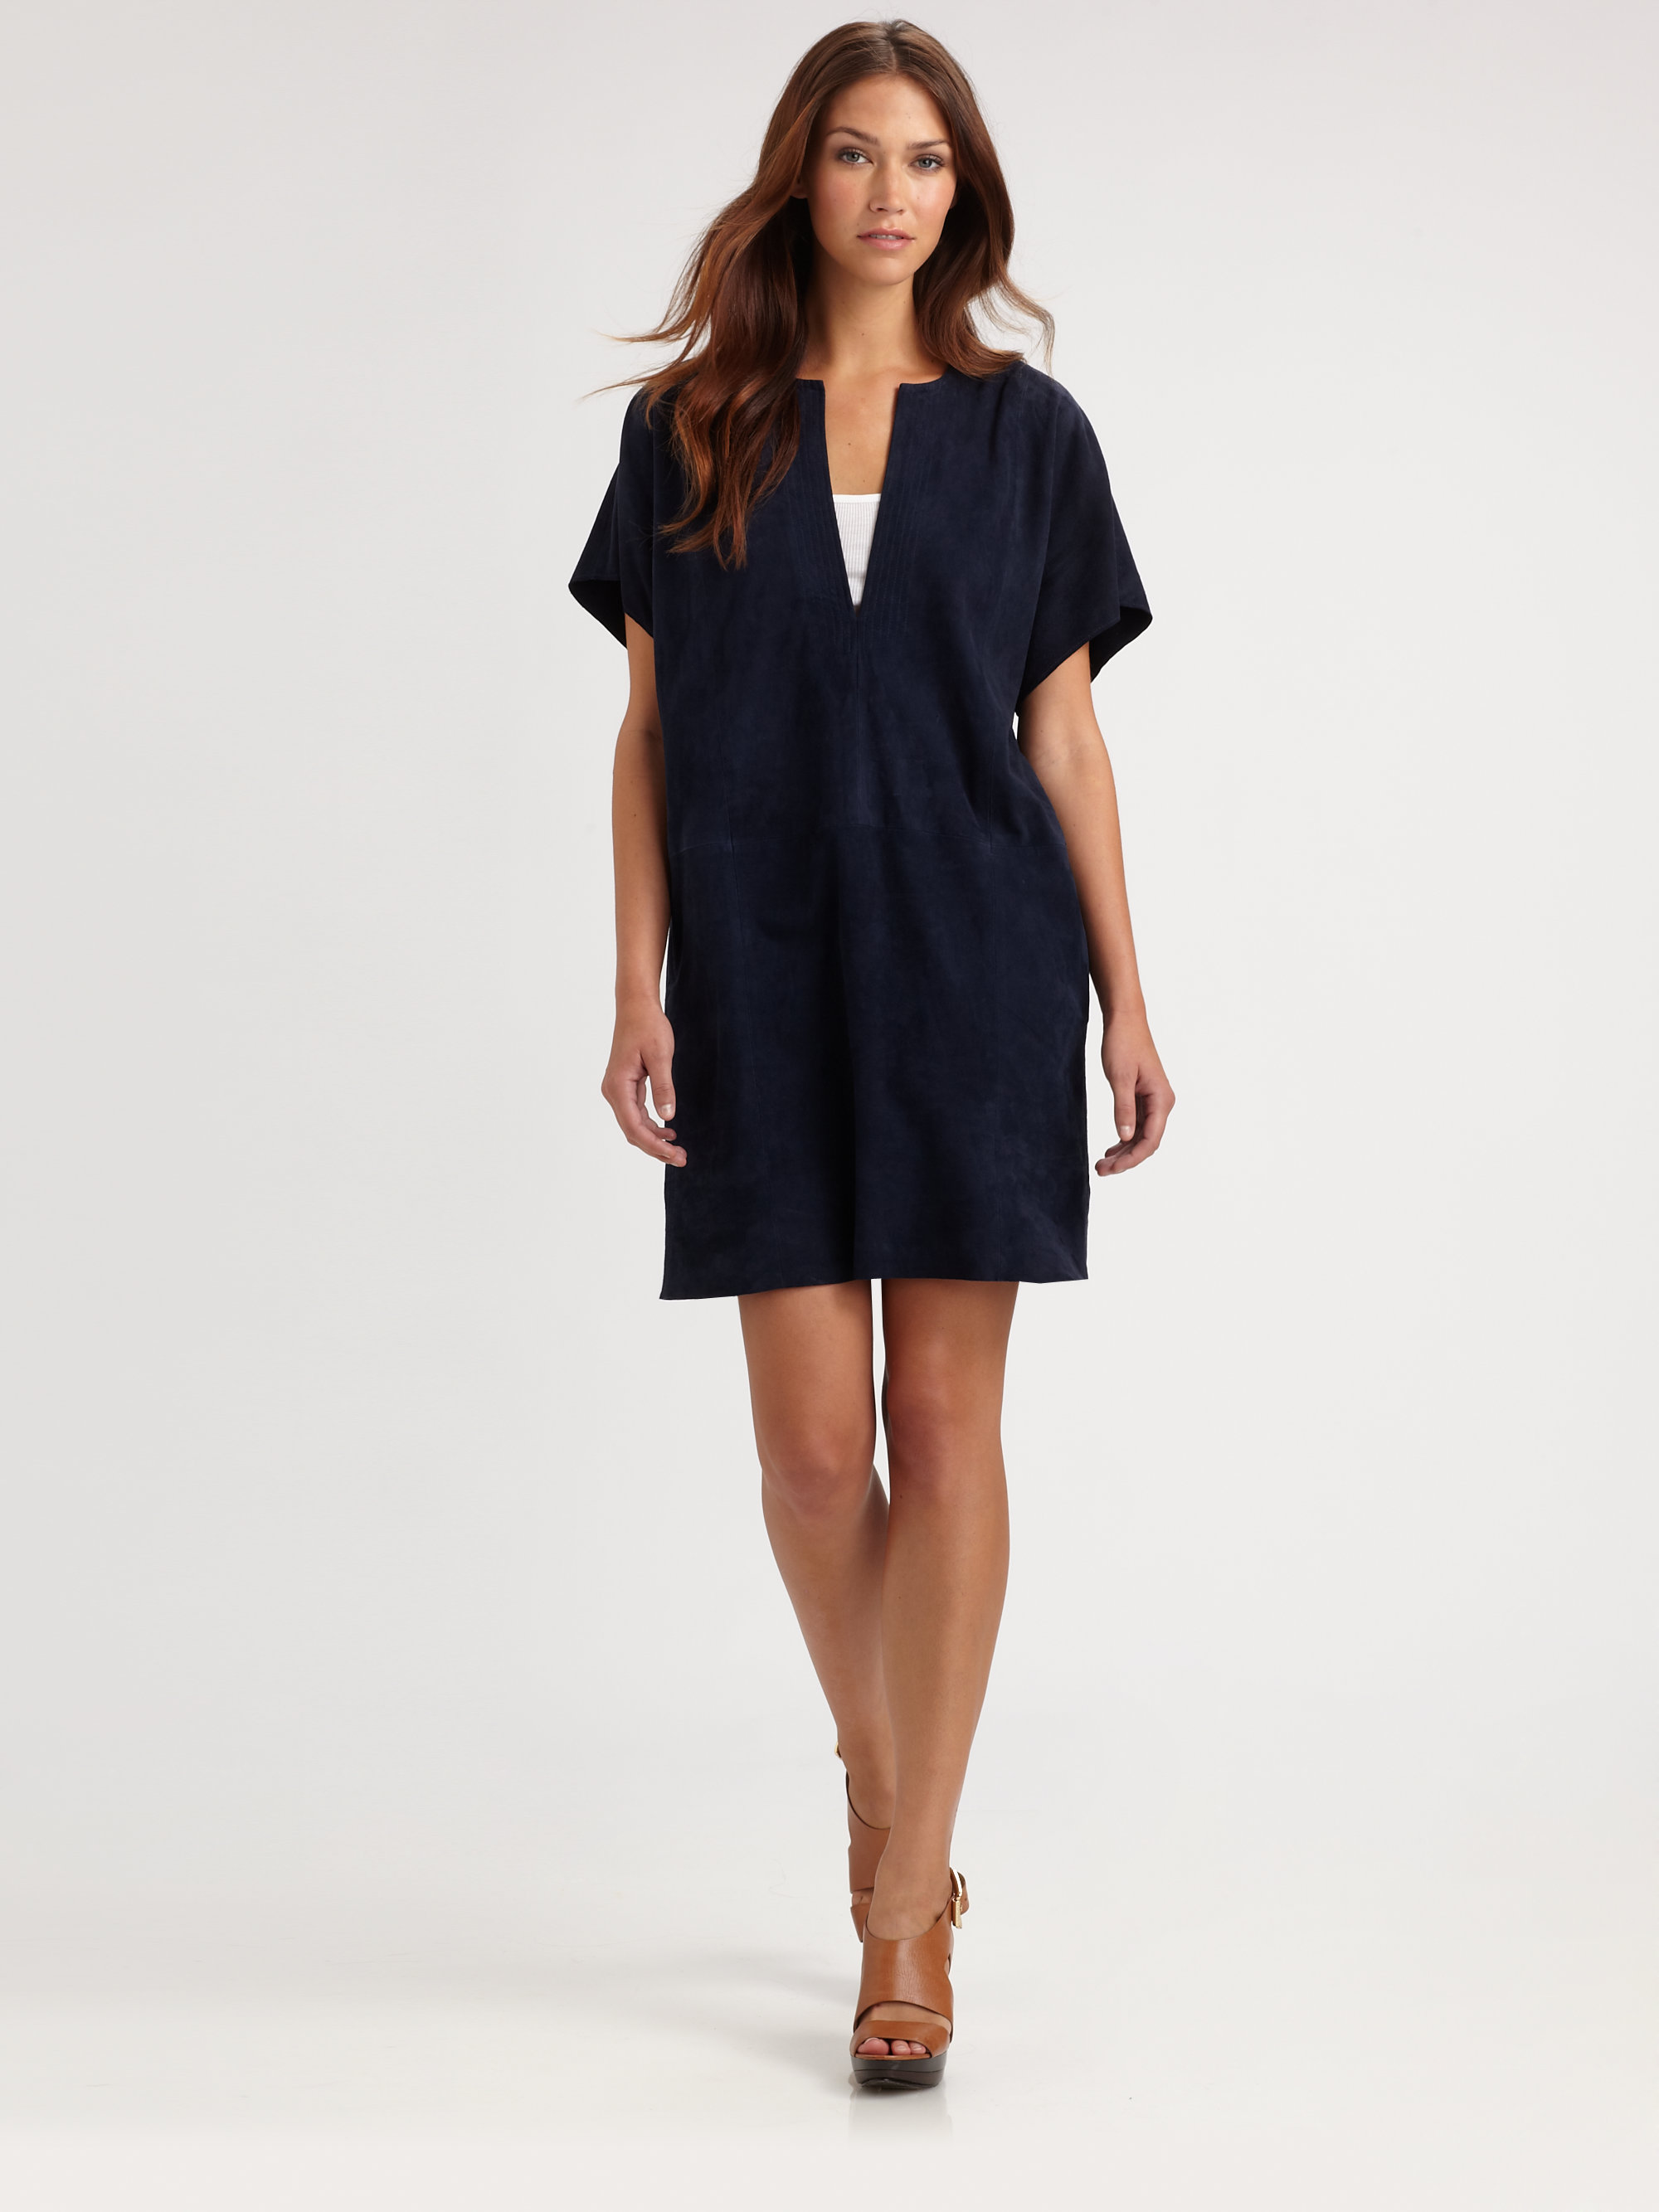 Navy Blue Tunic Dress